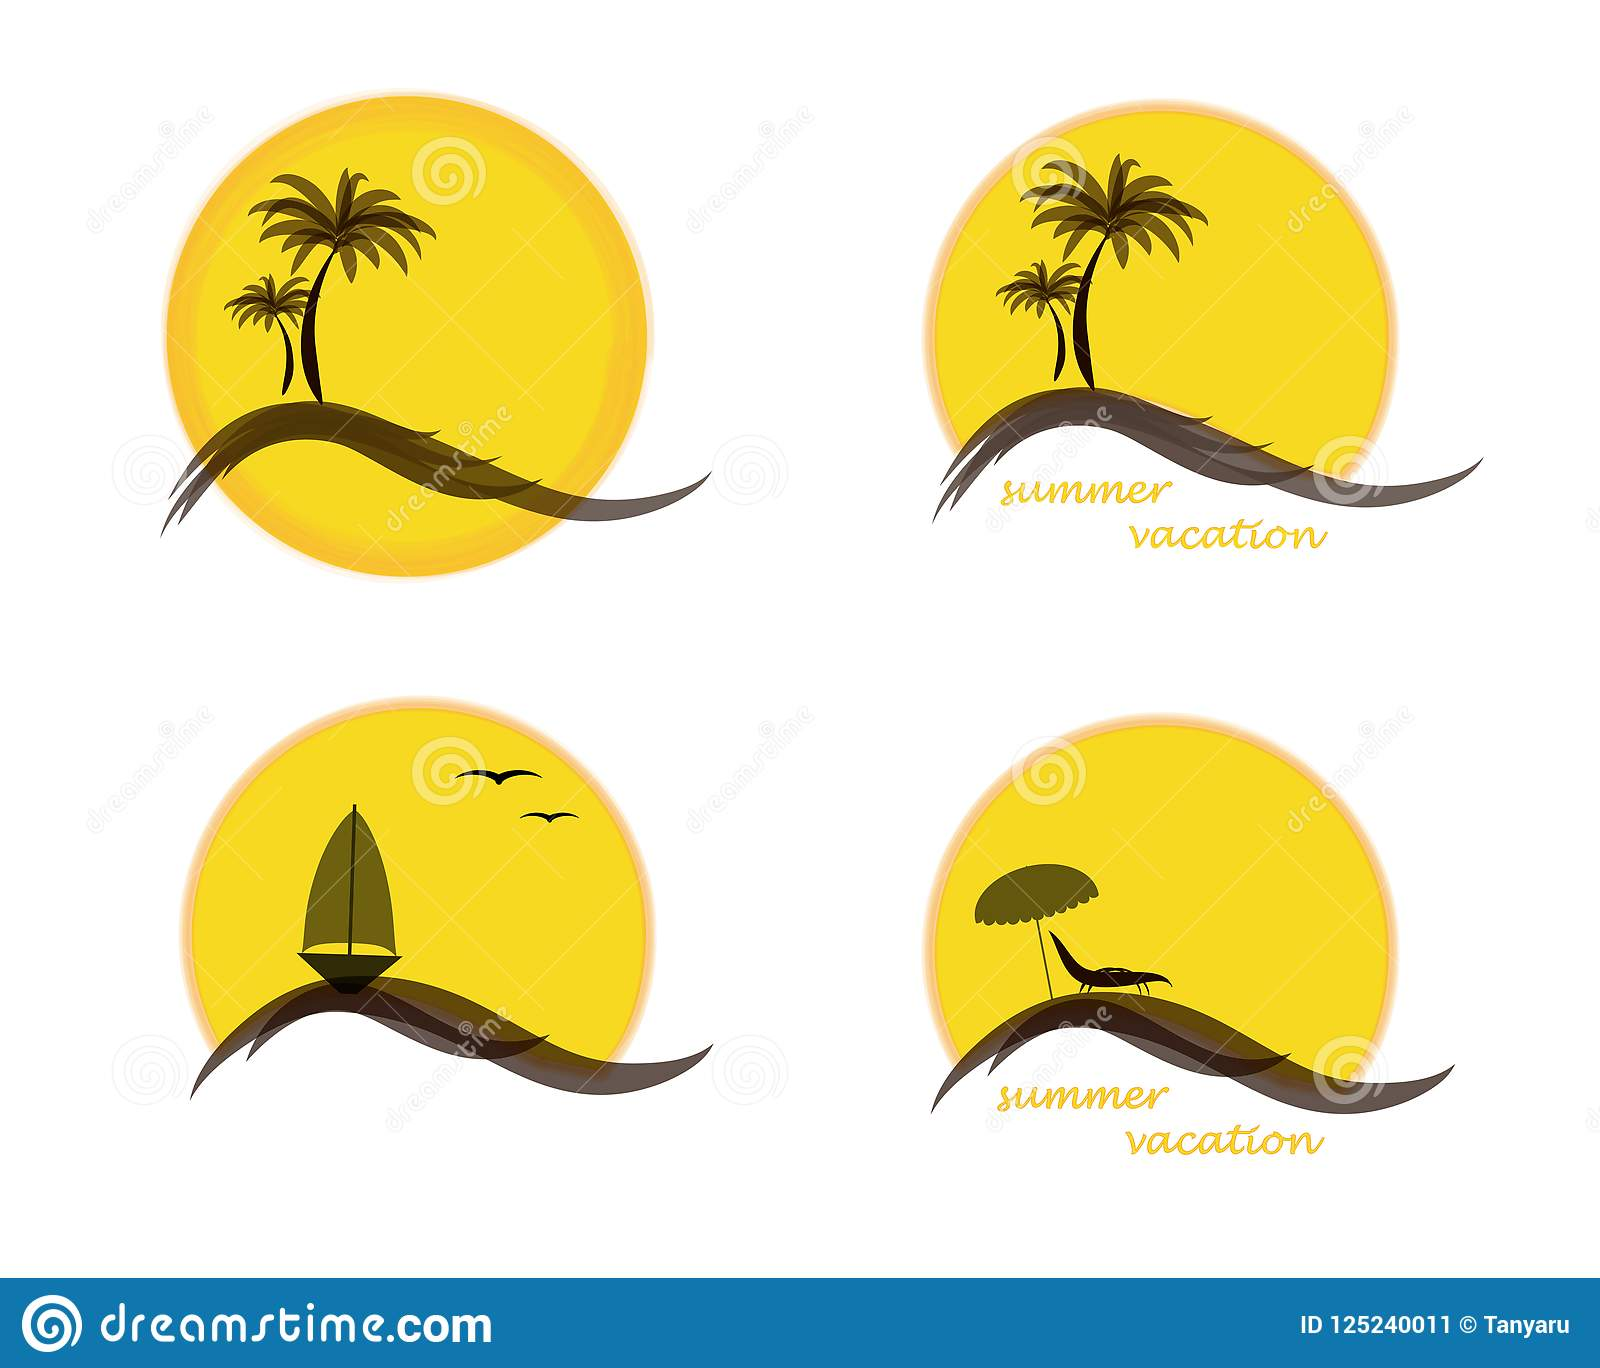 Four summer logo with sun, palm trees, ocean or sea, sailing ship and beach, vector illustration isolated on white